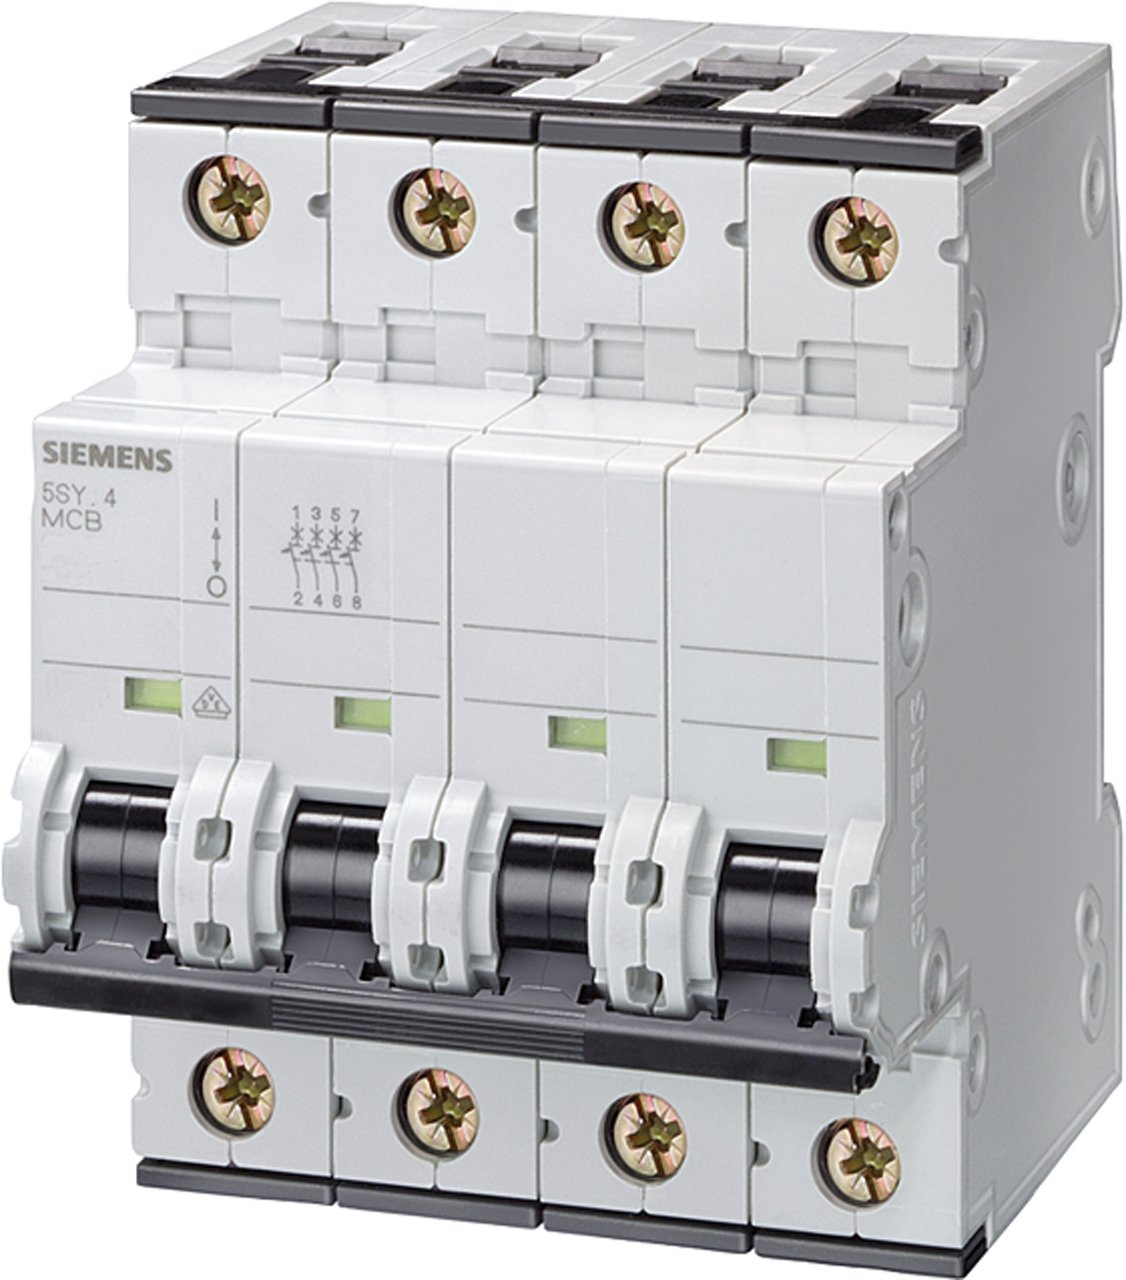 Siemens 5SY64206 Supplementary Protector, UL 1077 Rated, 4 Pole Breaker, 20 Ampere Maximum, Tripping Characteristic B, DIN Rail Mounted